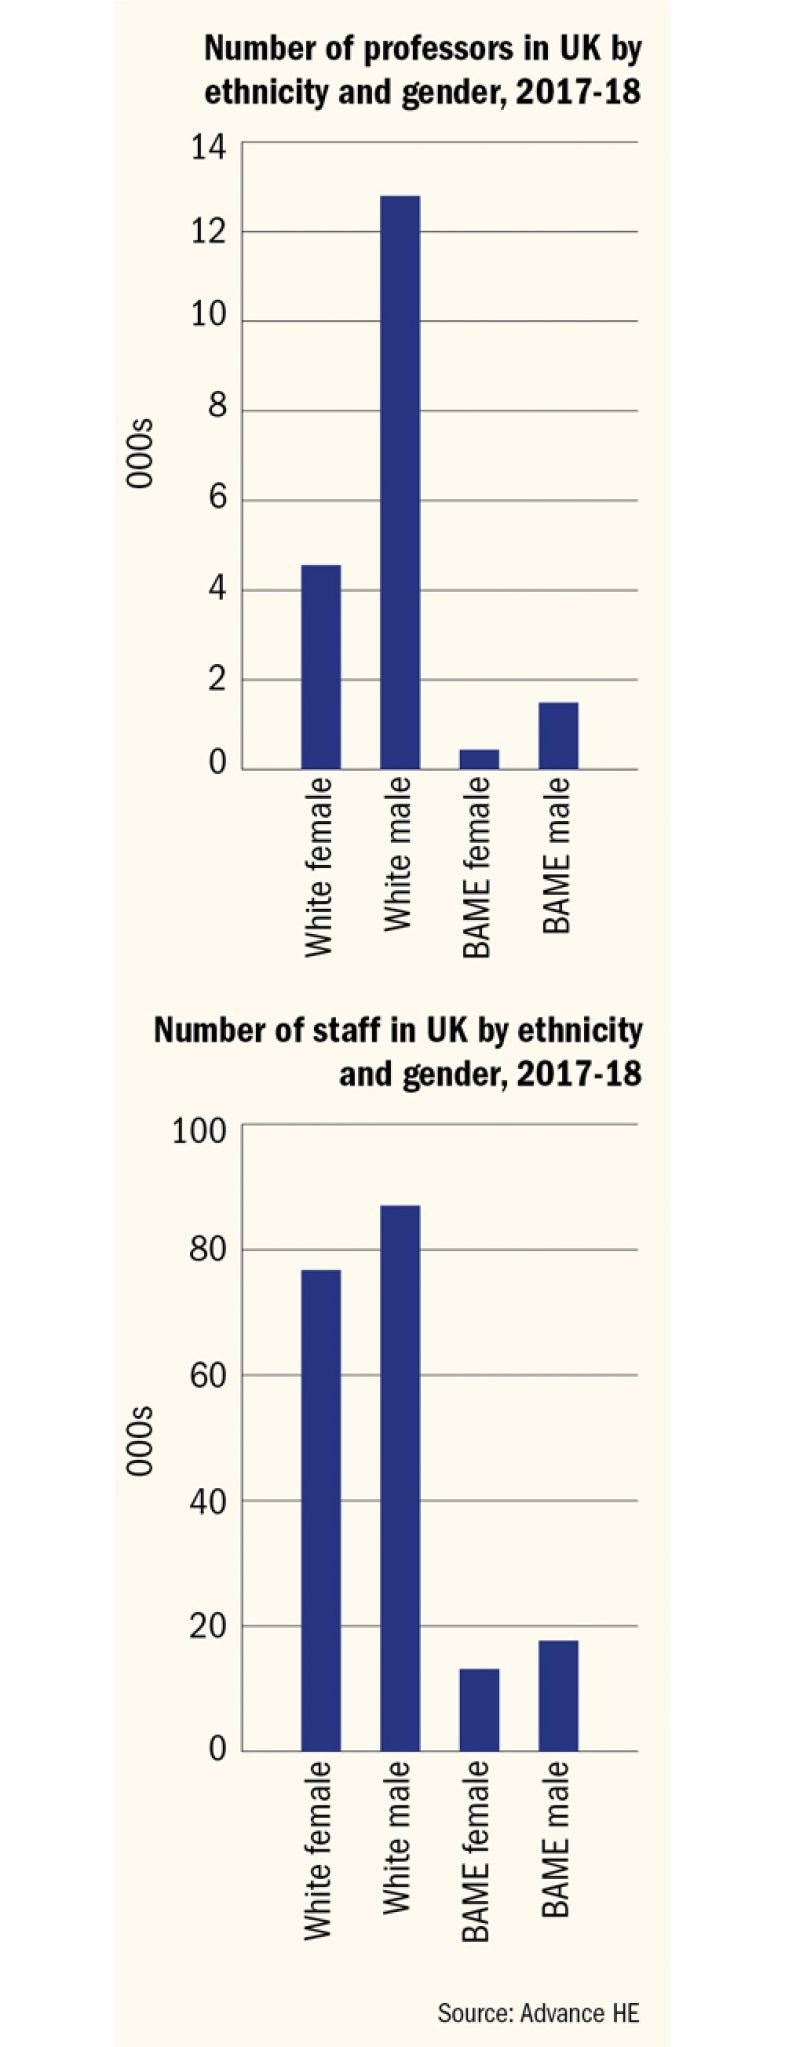 Number of professors and staff in UK by ethnicity and gender, 2017-18